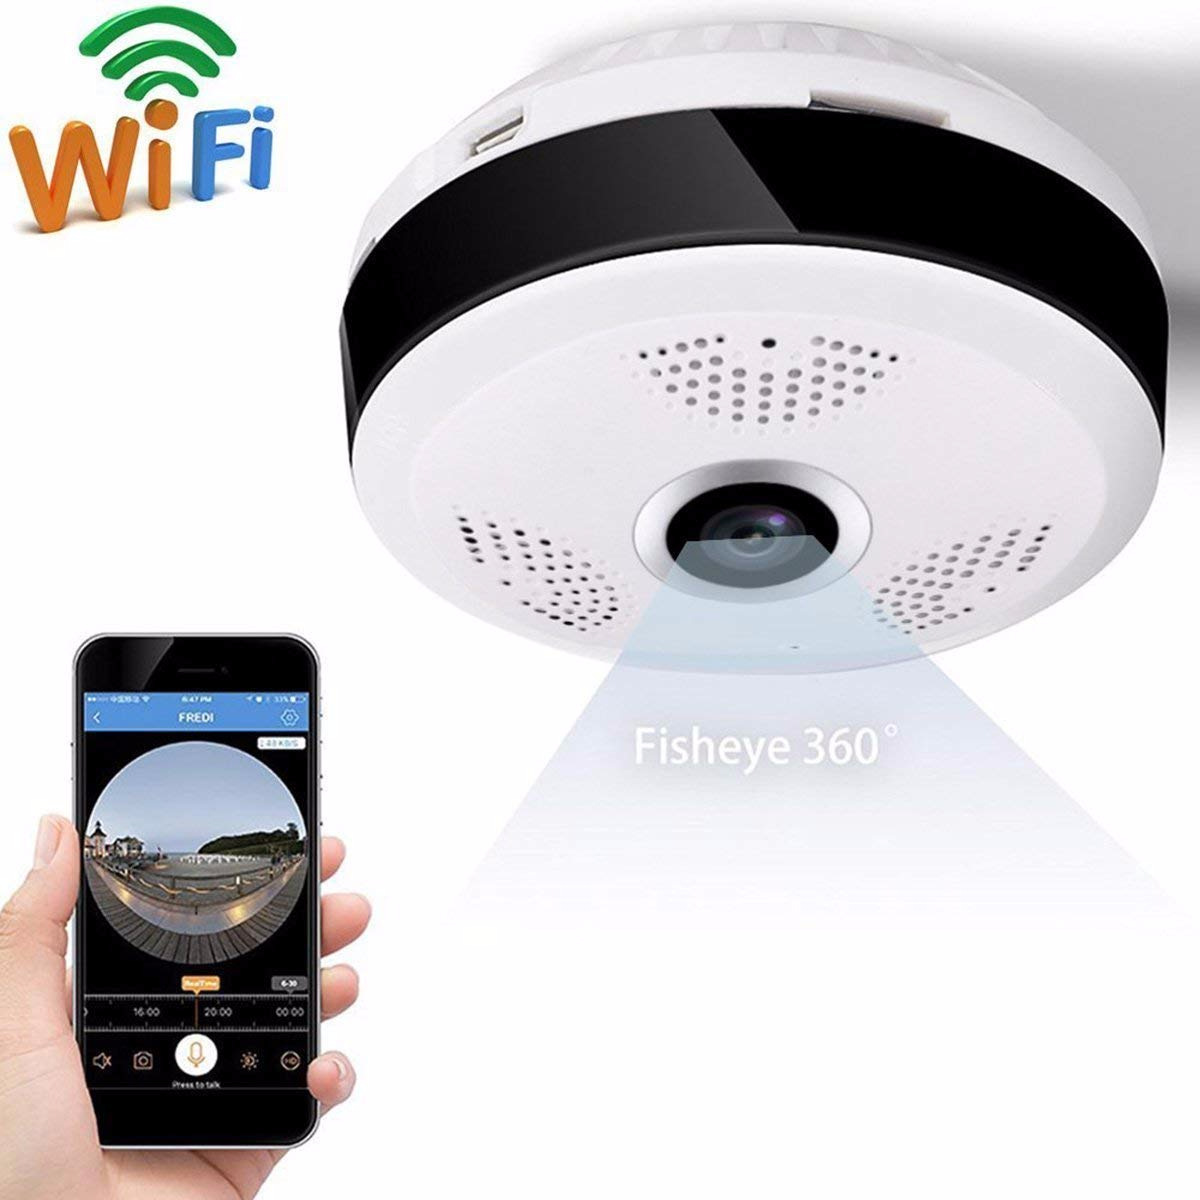 Home Safe Camera,iRULU HD 1080P VR WiFi IP Camera 2.0MP,Motion Detection,P2P,Two-Way Audio IR 360 Degree IP CAM WI-FI P2P Alarm (Size1, White)